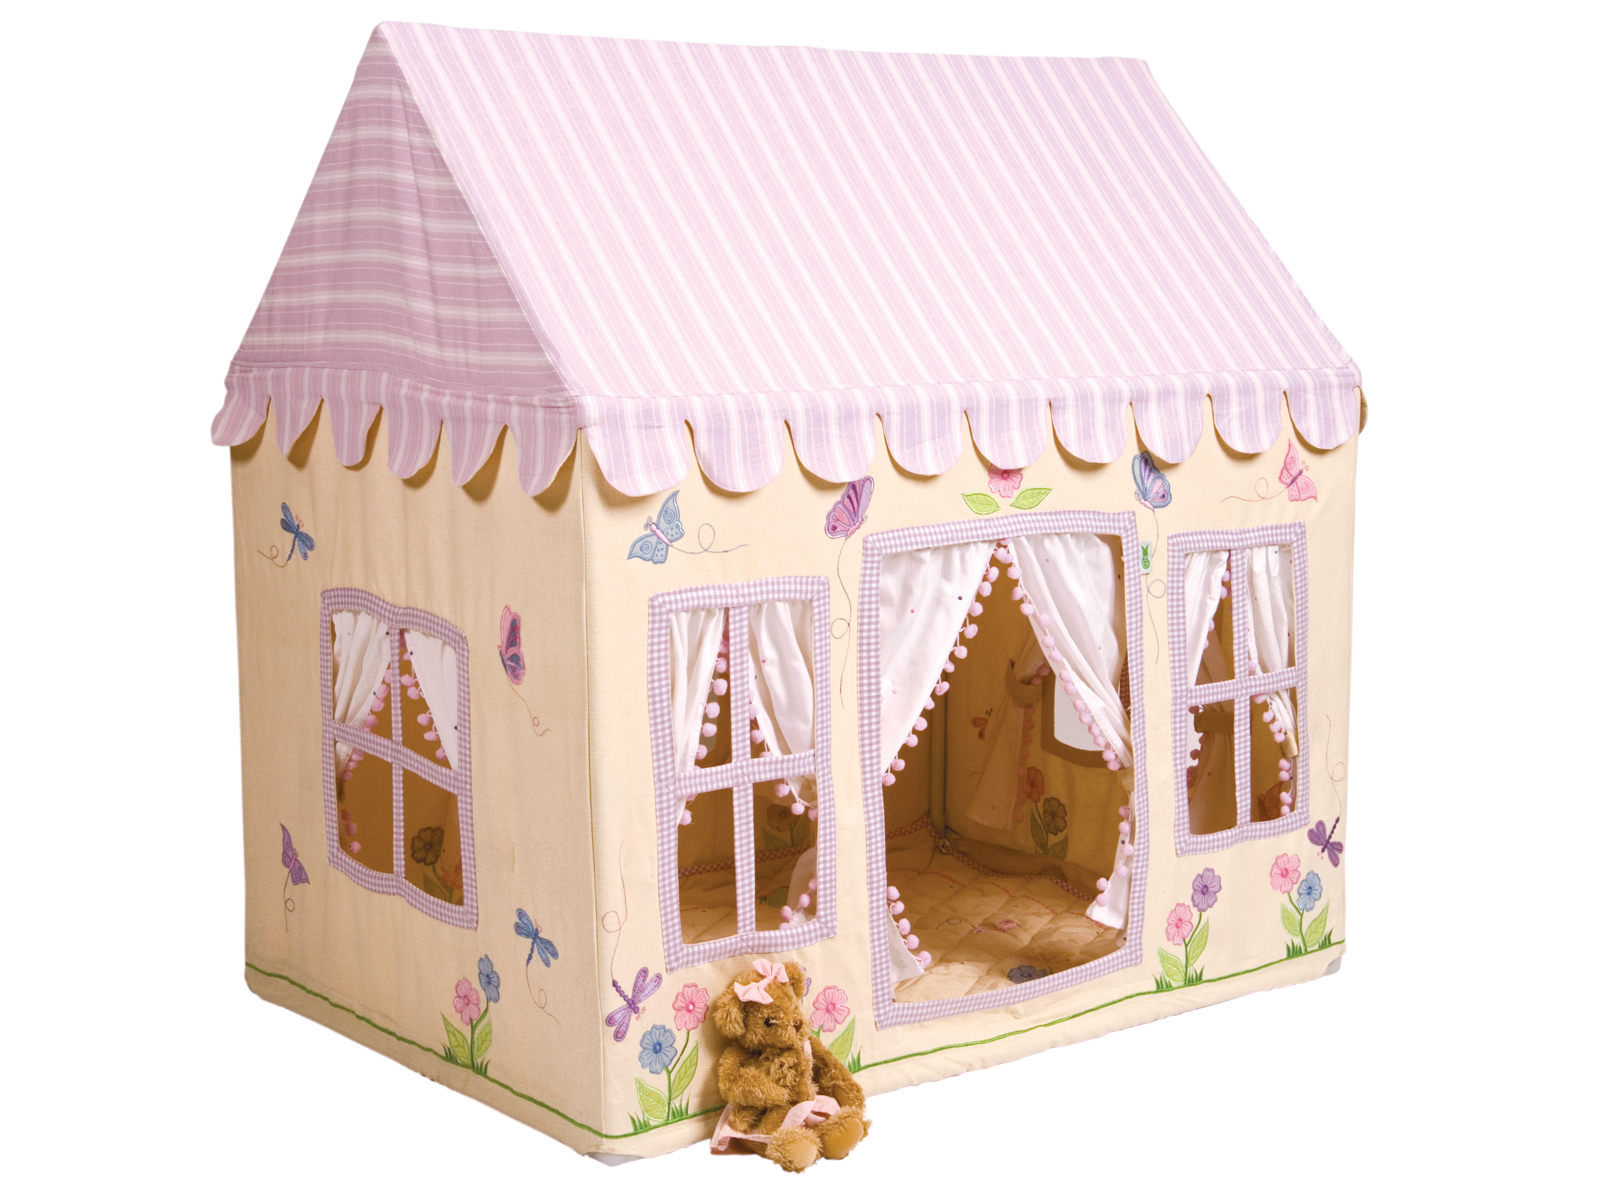 Win Green Handmade Cotton Butterfly Cottage Playhouse - Playhouse of Dreams  - 1